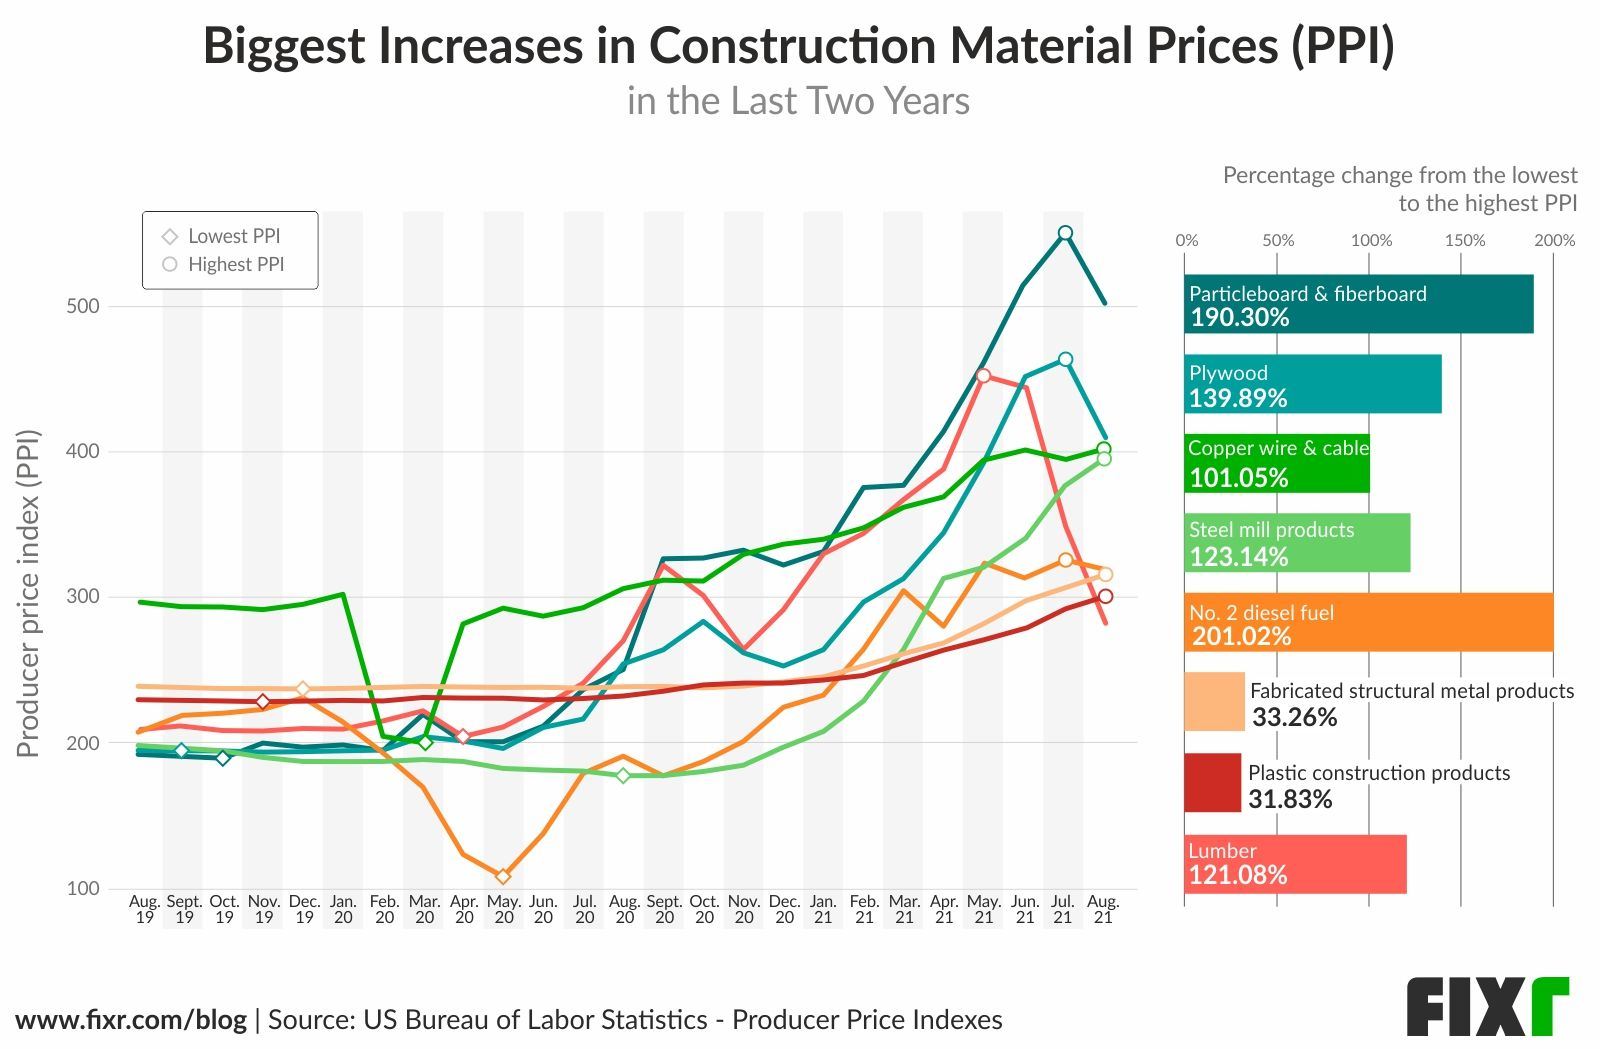 Biggest Increases in Construction Material Prices PPI 2019-2021